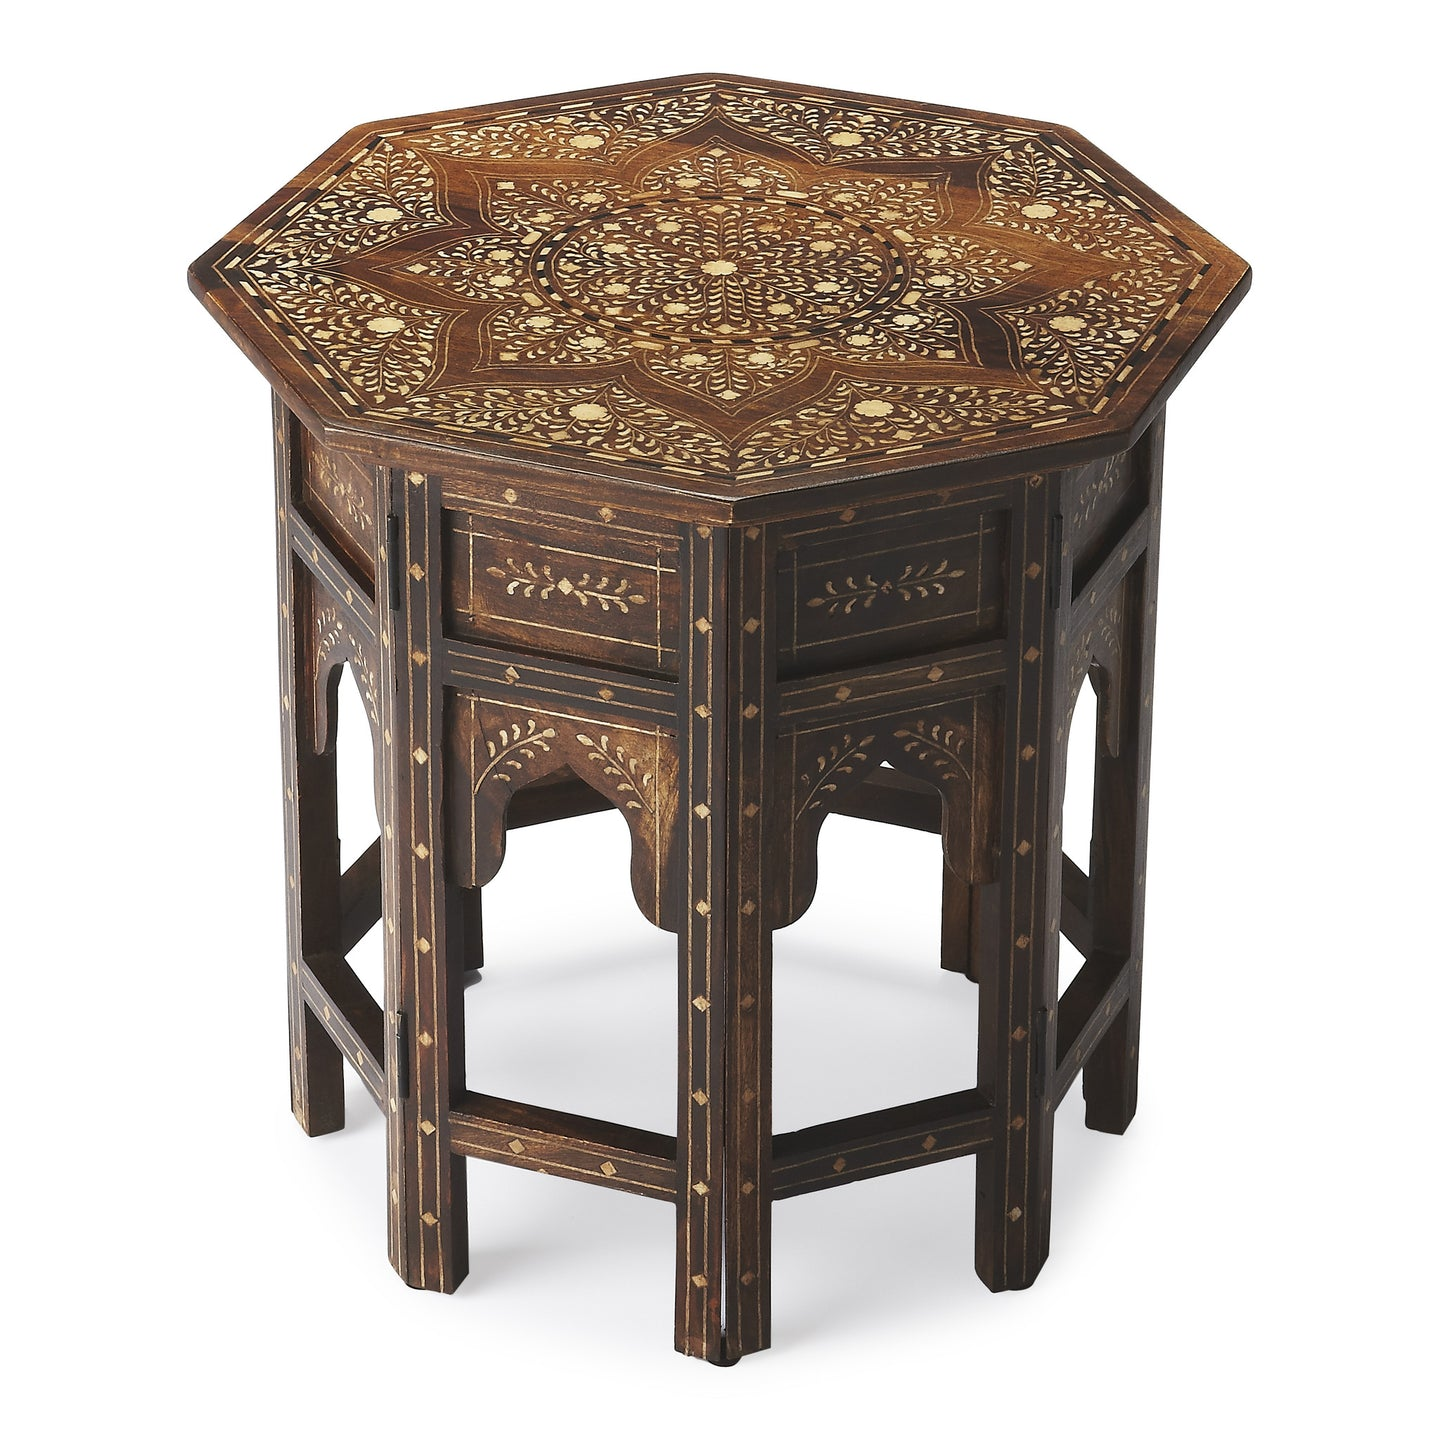 Butler Wood & Bone Inlay Accent Table by Butler Specialty Company 3596338